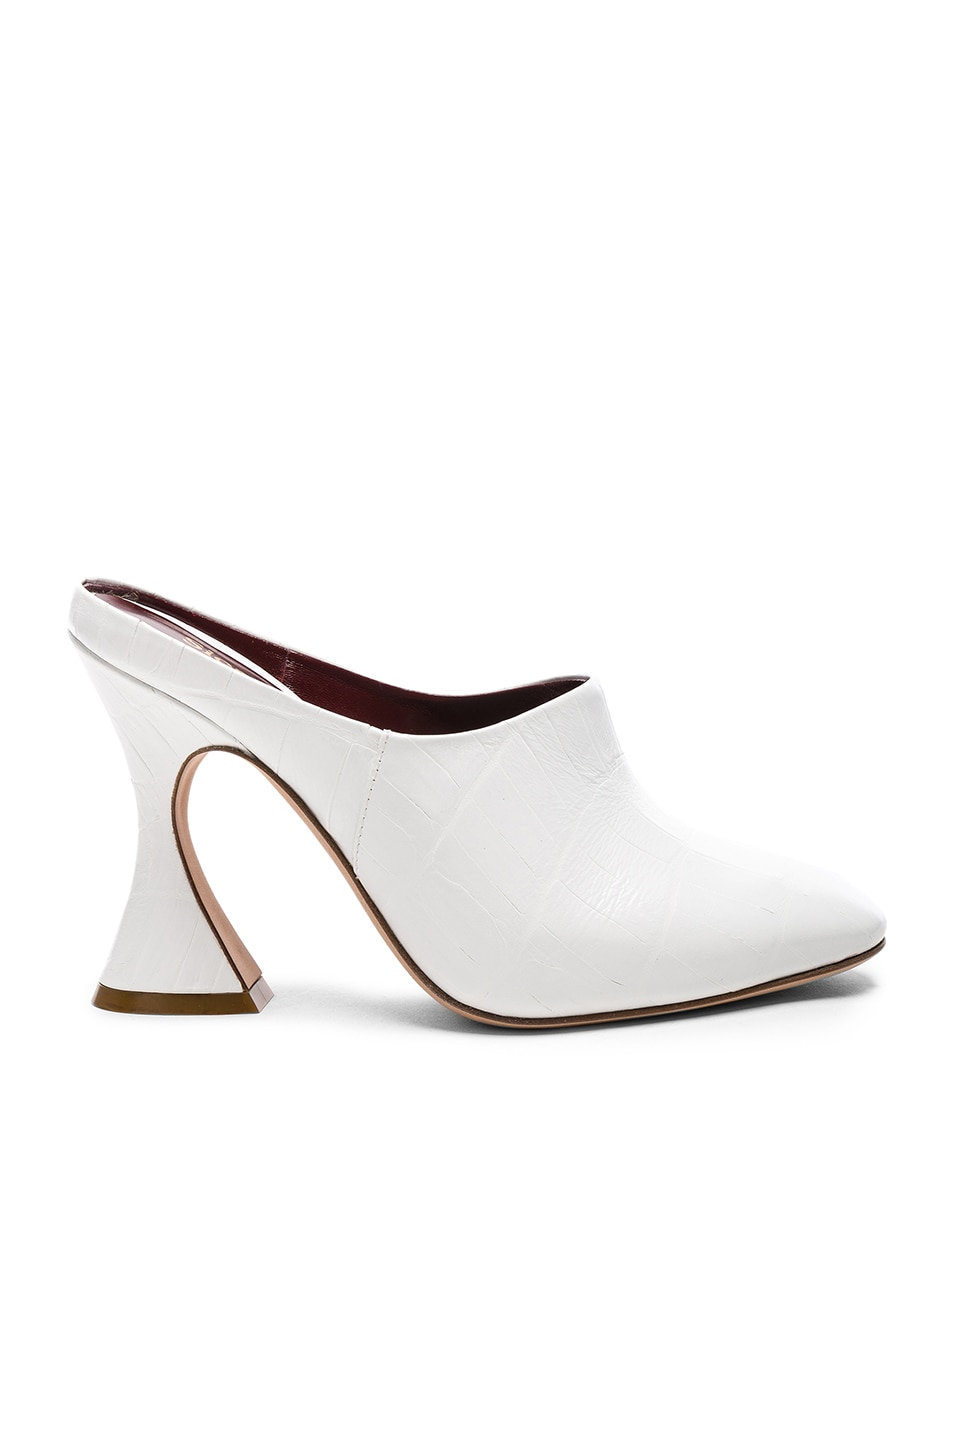 Comfortable Sale Online Sies marjan Elisa embossed leather mules Real Online Clearance Outlet Store 3LqwWD2jW